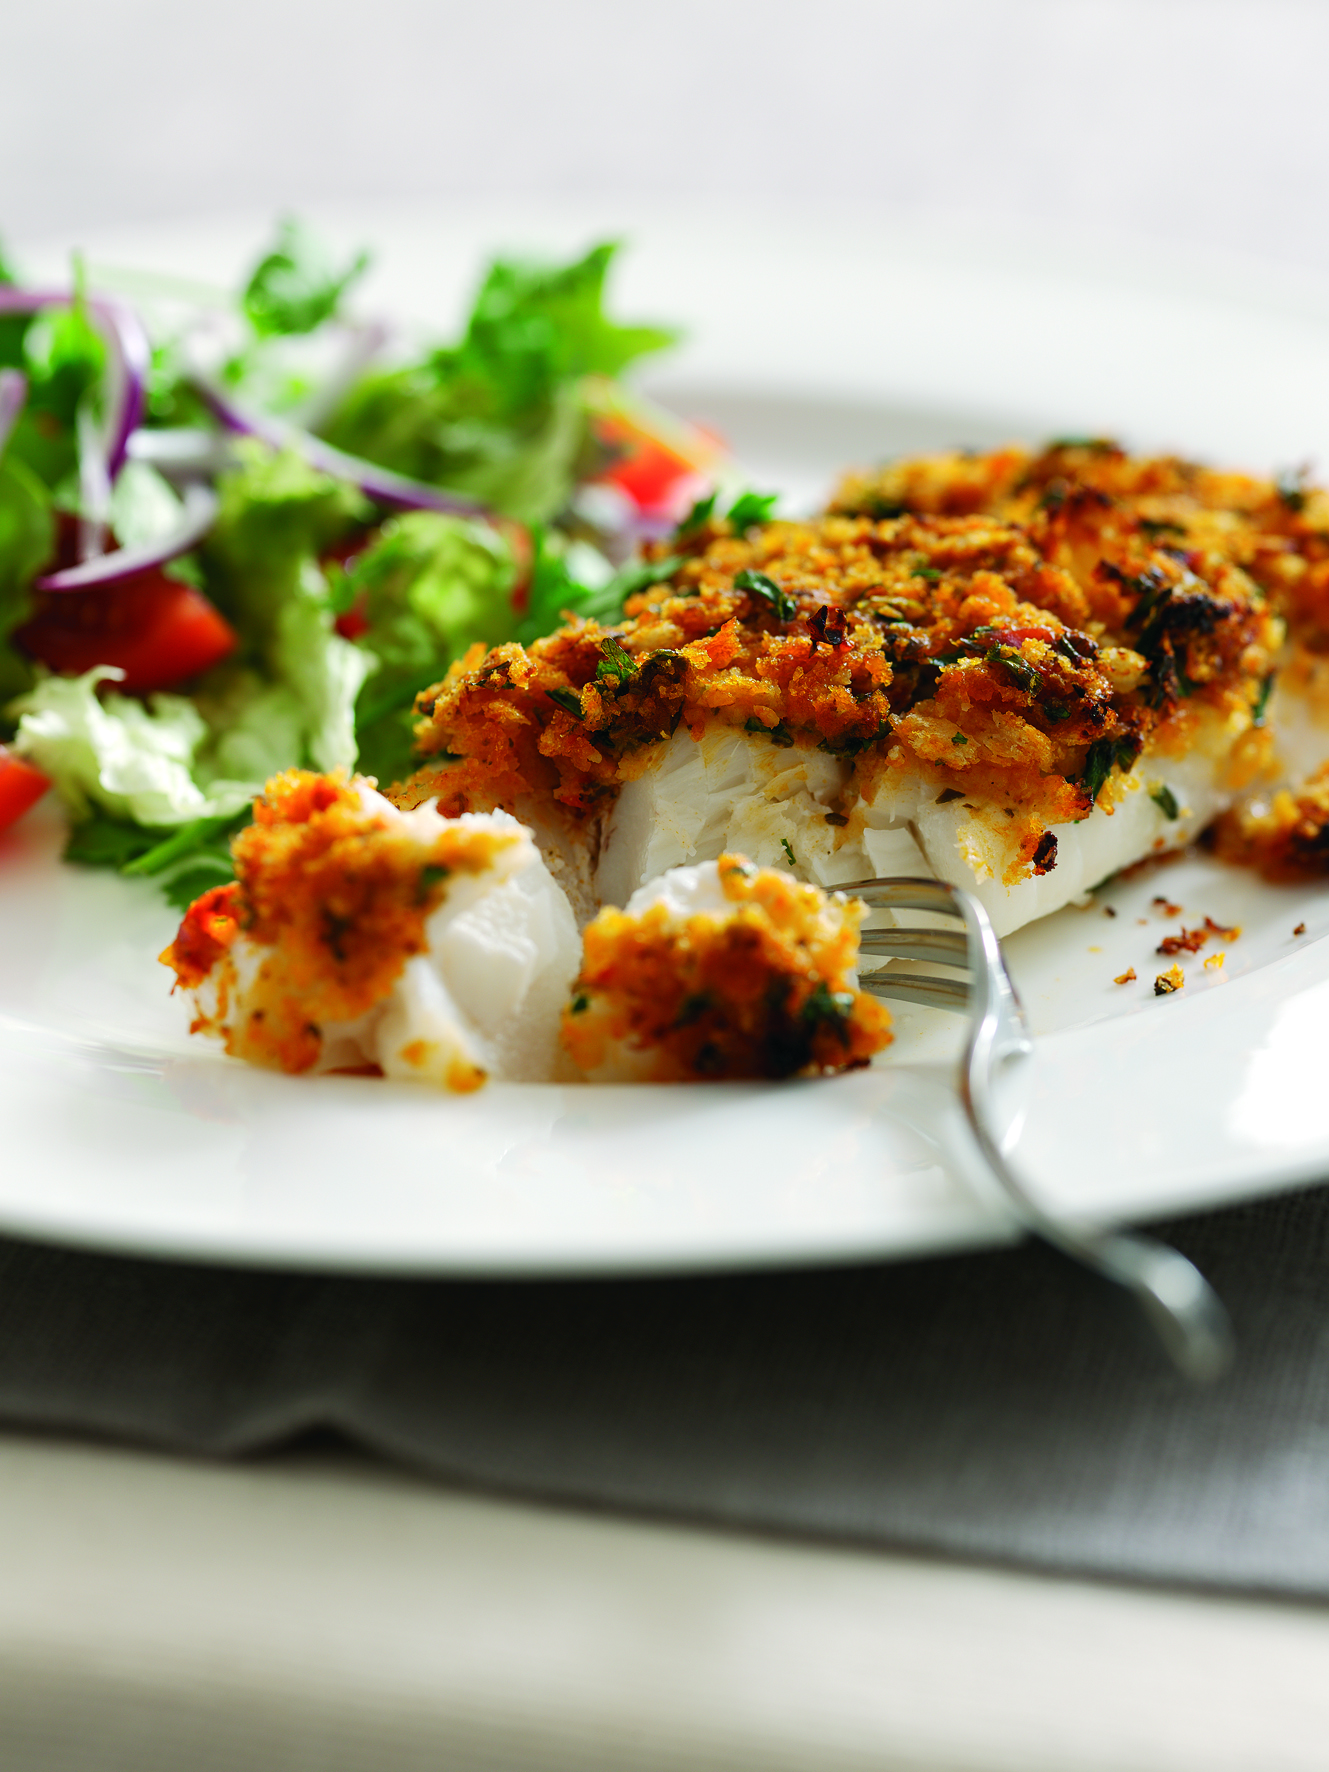 Recipe: Oven-Baked Cod with Organic Tomato Crust